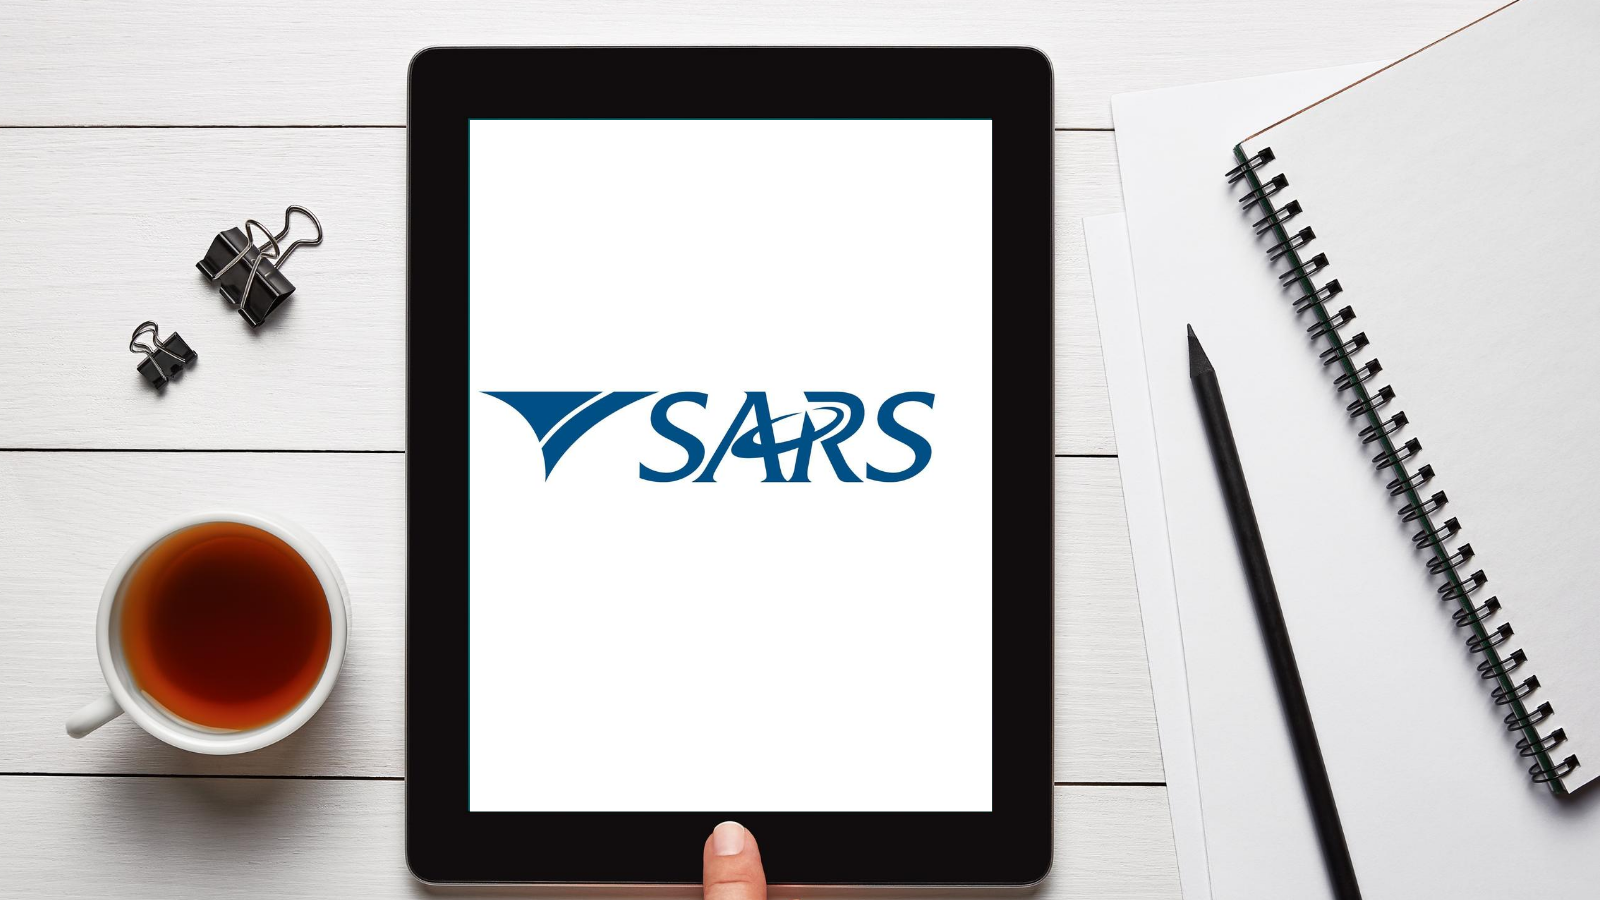 SARS launches its own browser for eFiling - Memeburn